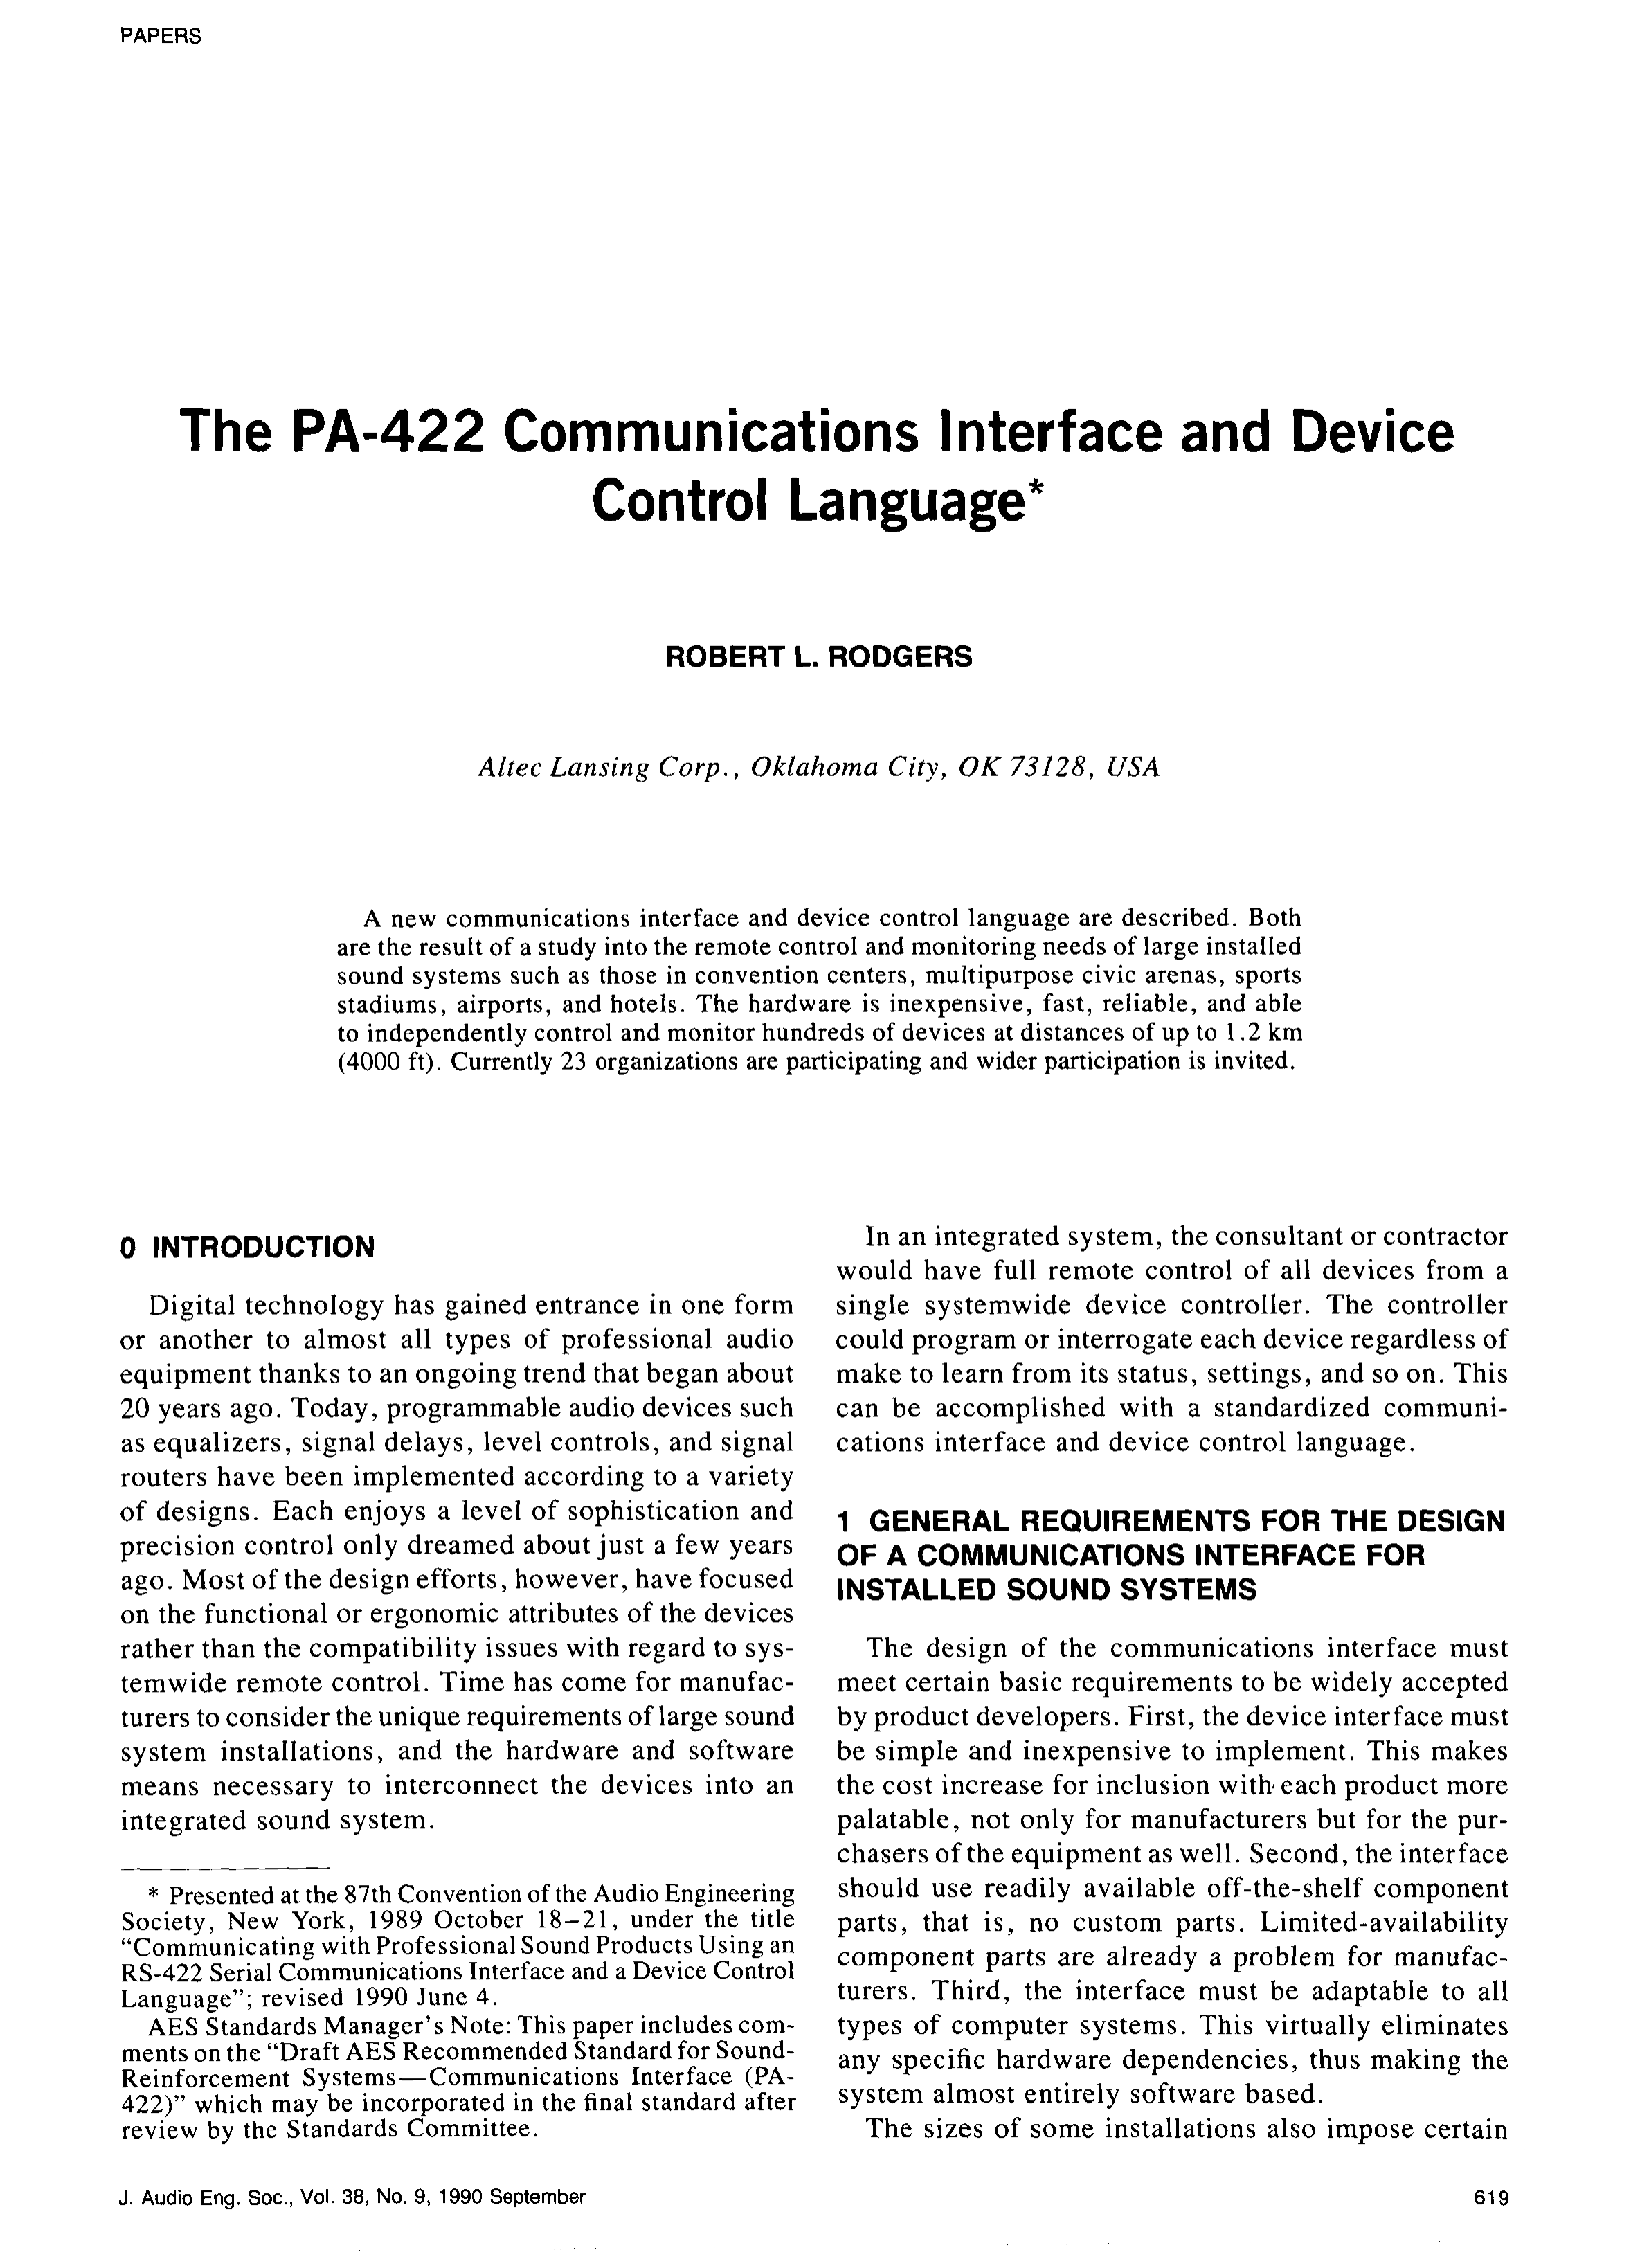 Aes E Library The Pa 422 Communications Interface And Device Optoisolator For Volume Control Language